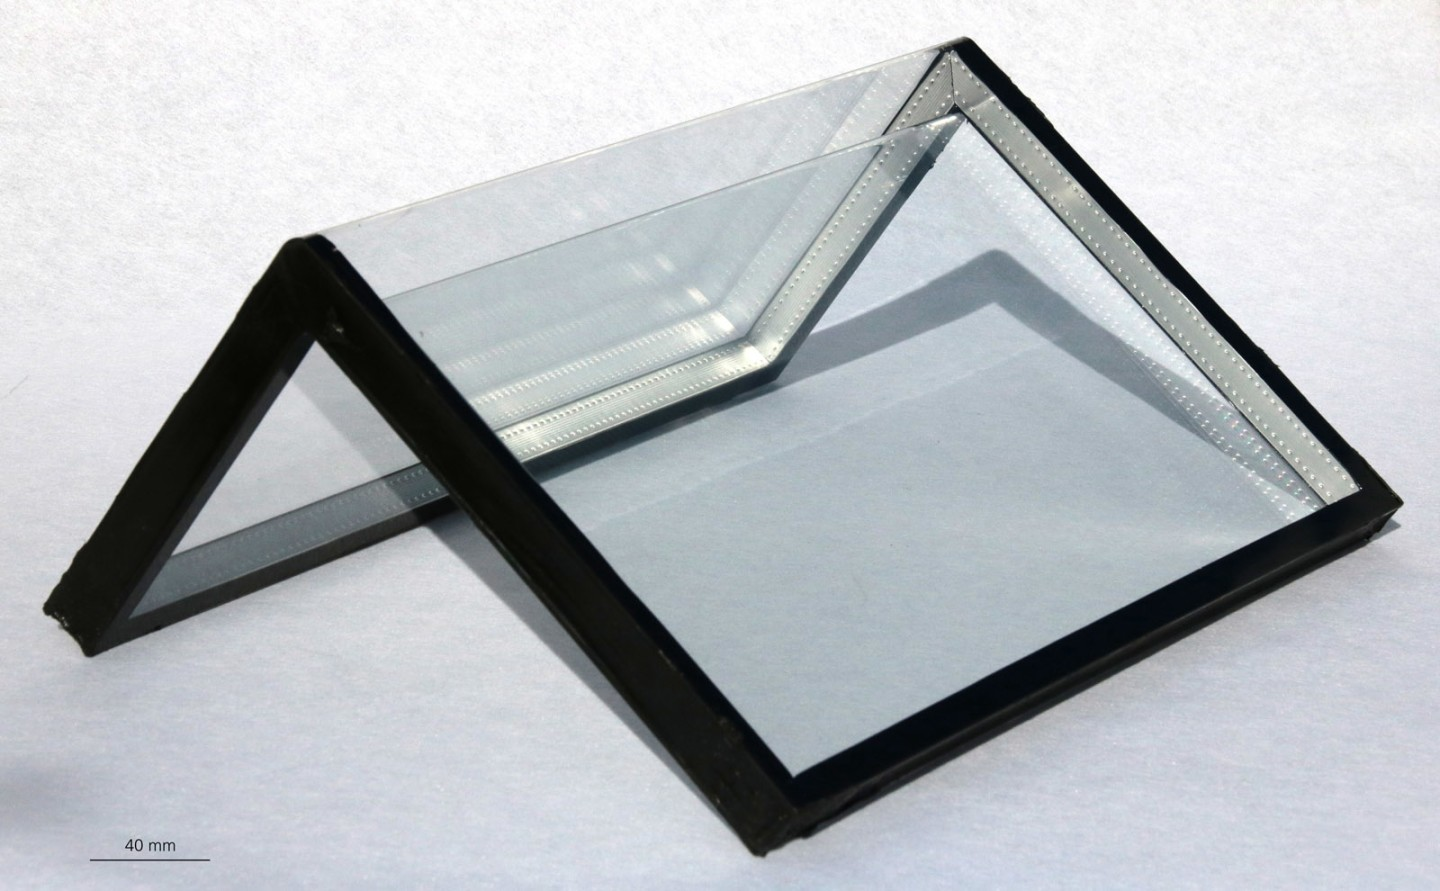 German Scientists Develop the New Technology that Bends Glass Sheets at Right Angles